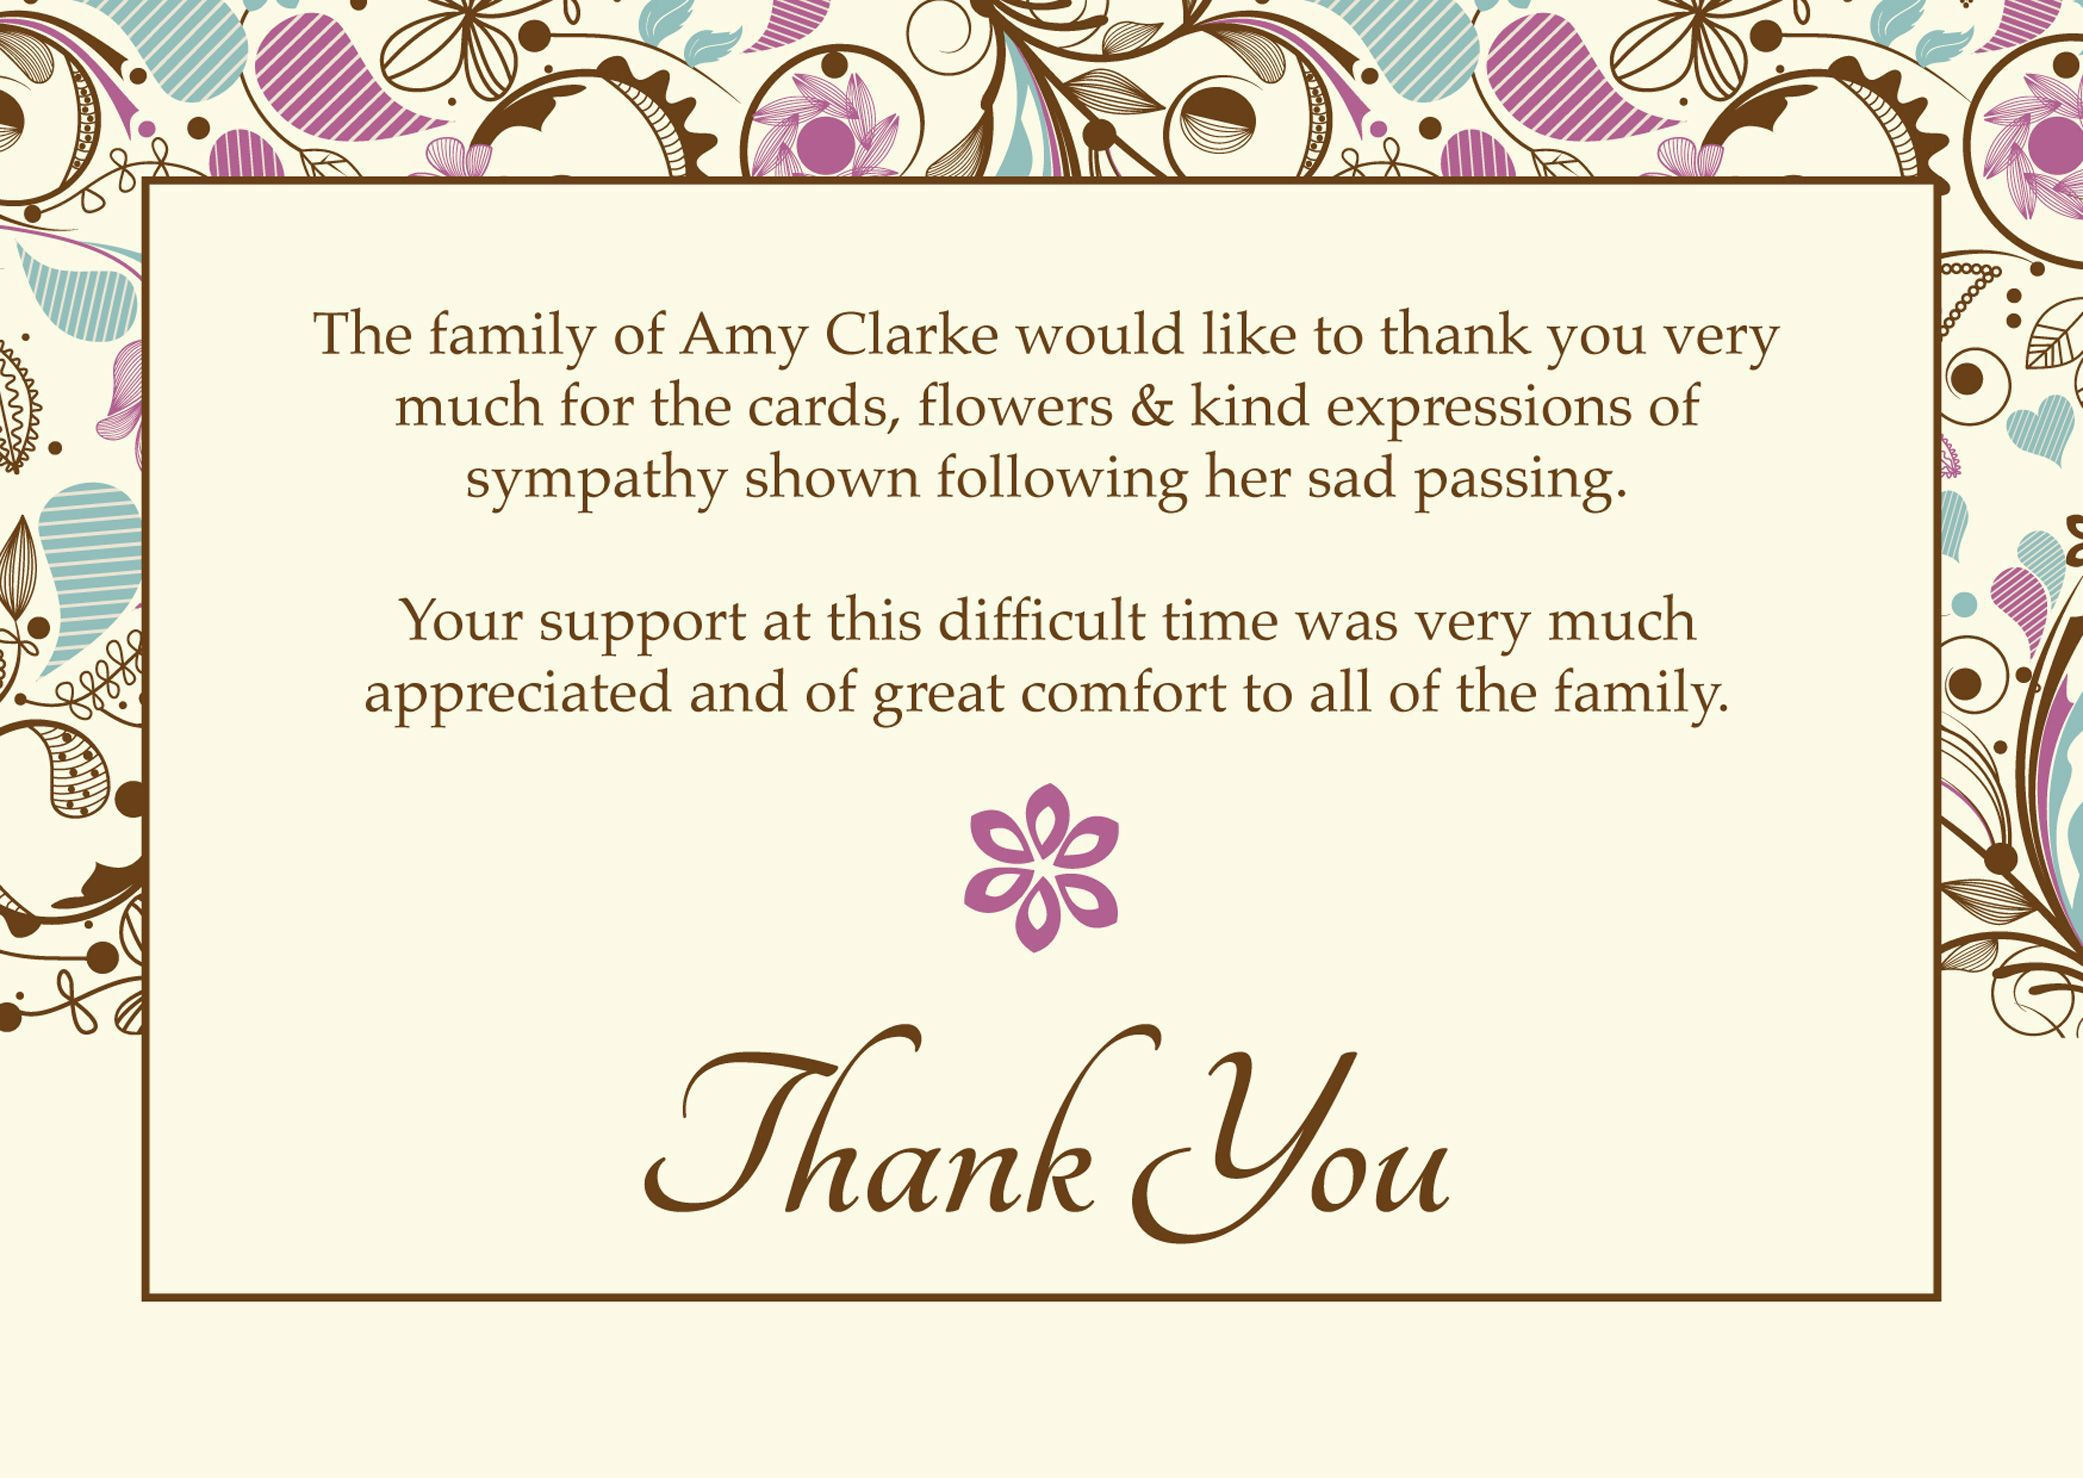 006 Sensational Free Thank You Note Template Word High Resolution  Card DownloadFull